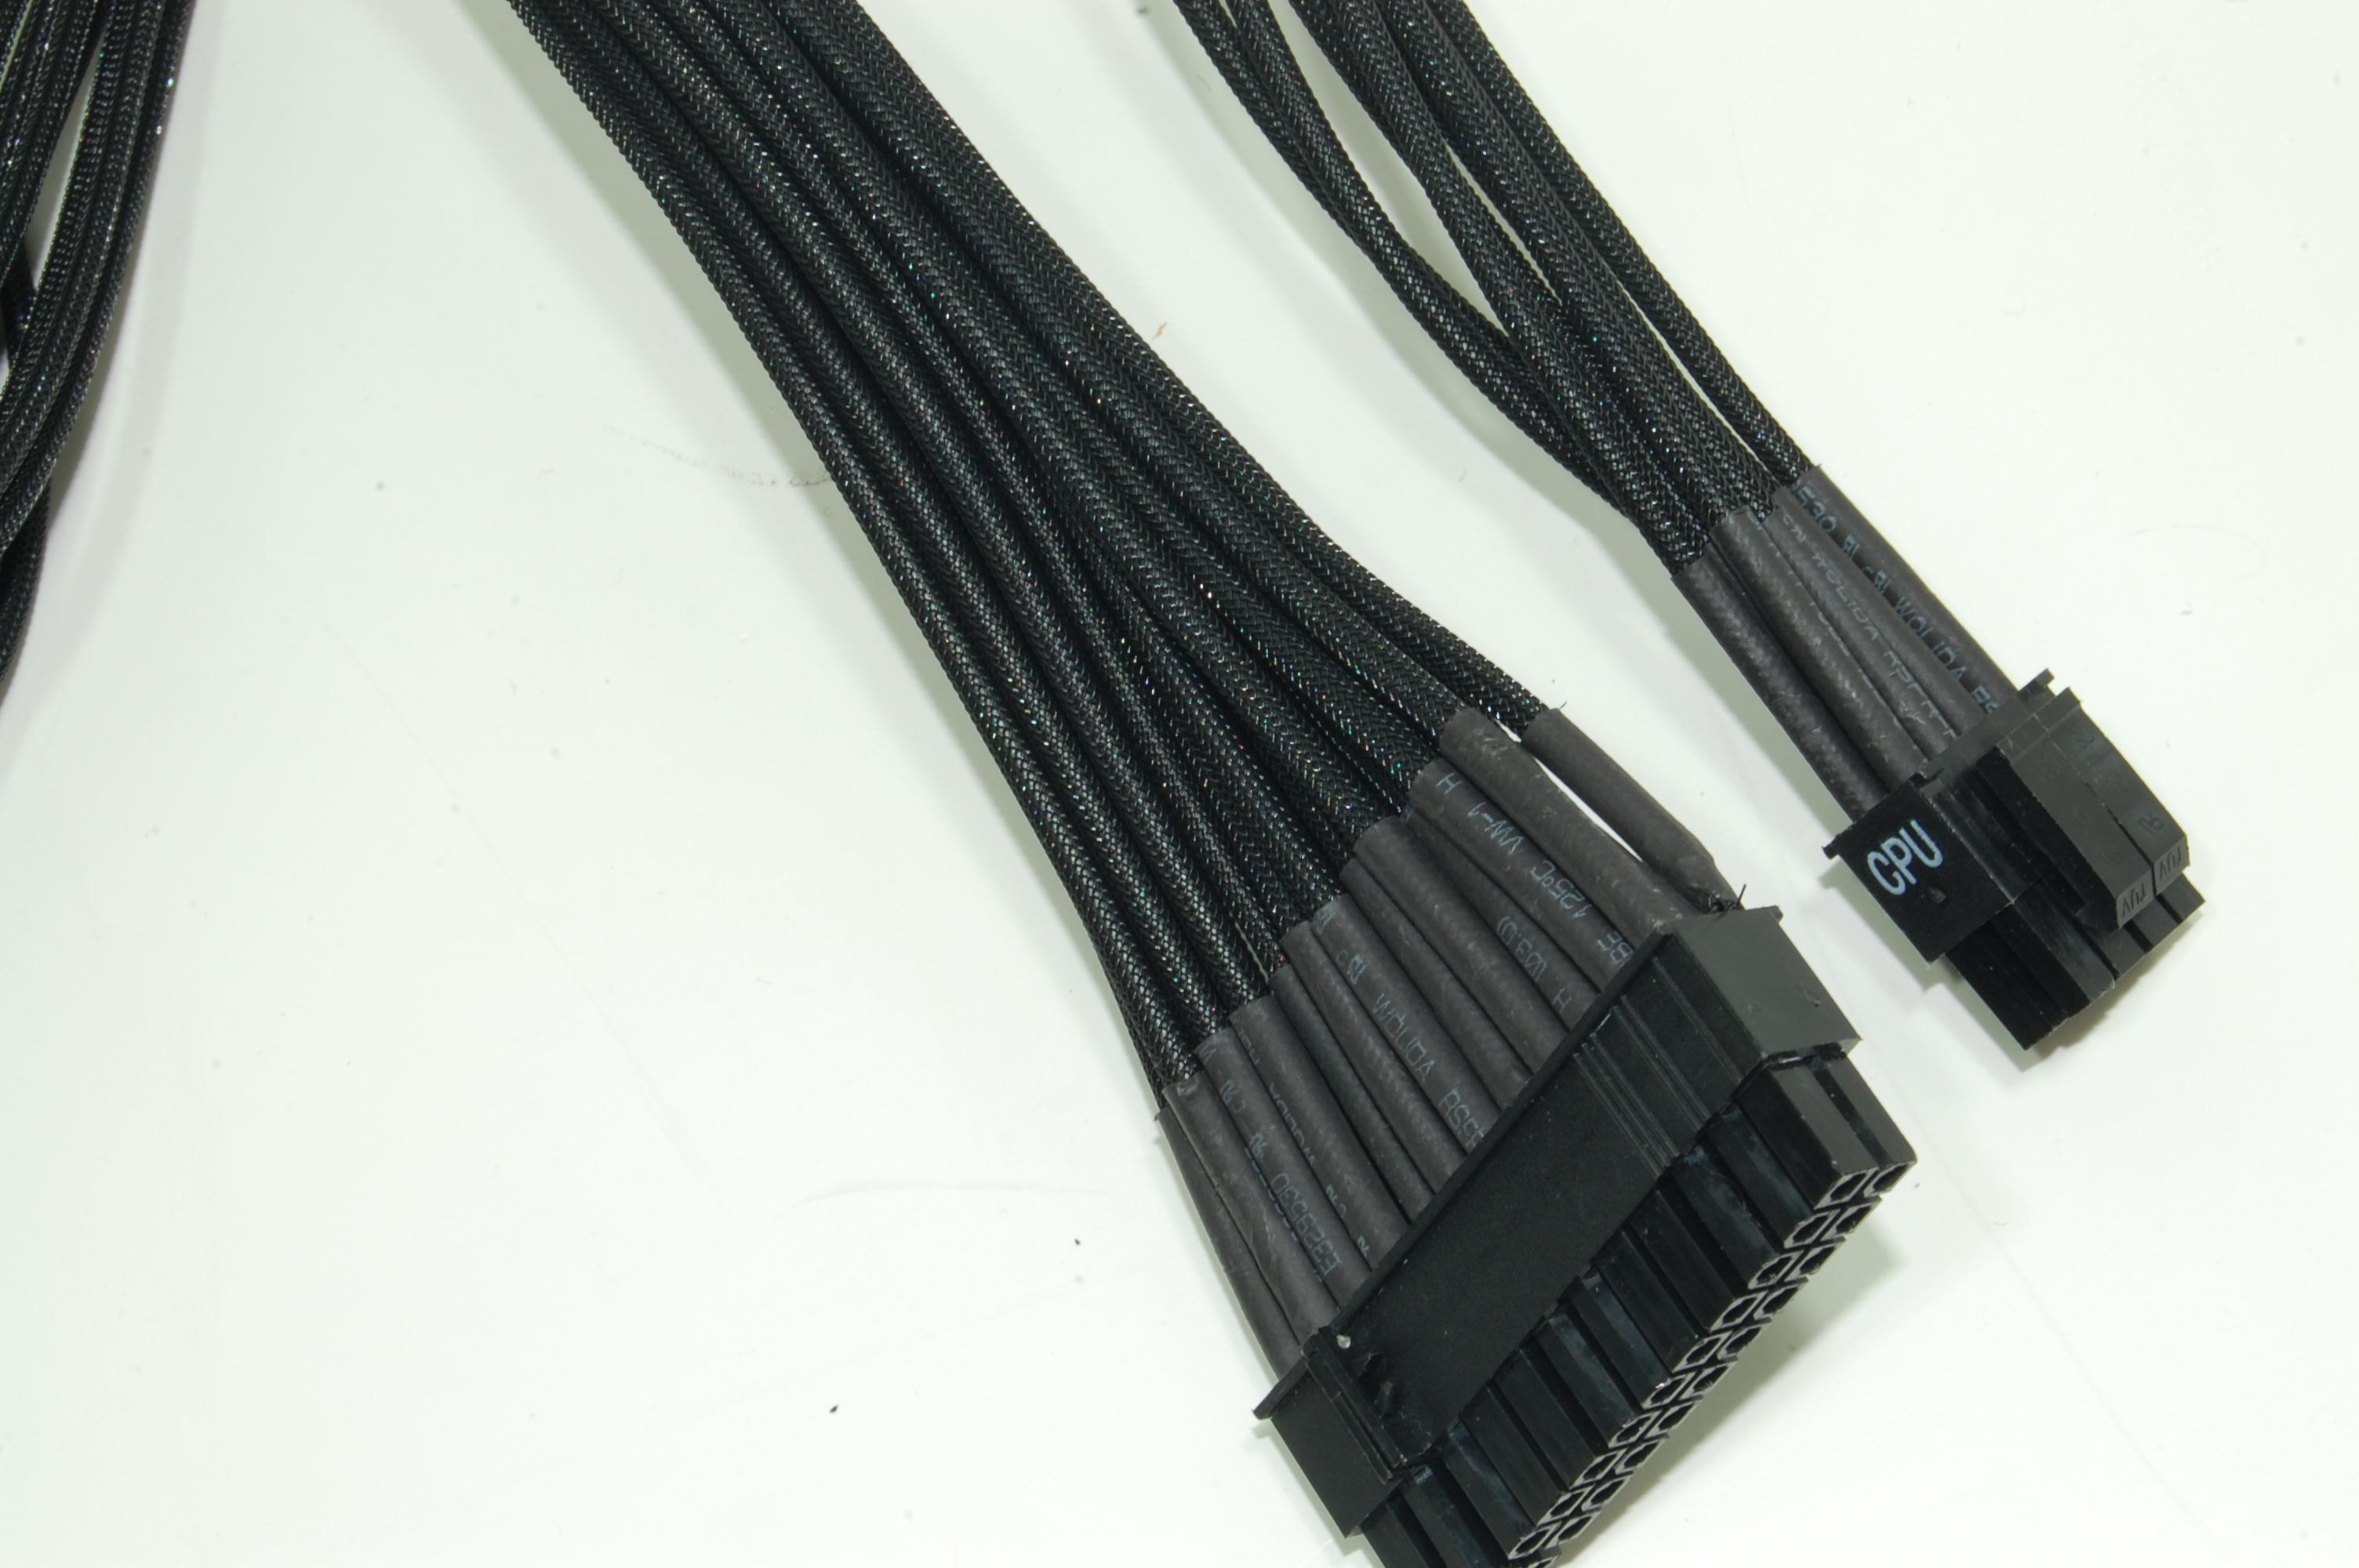 OCZ Fatal1ty 1000W Power Supply Cables